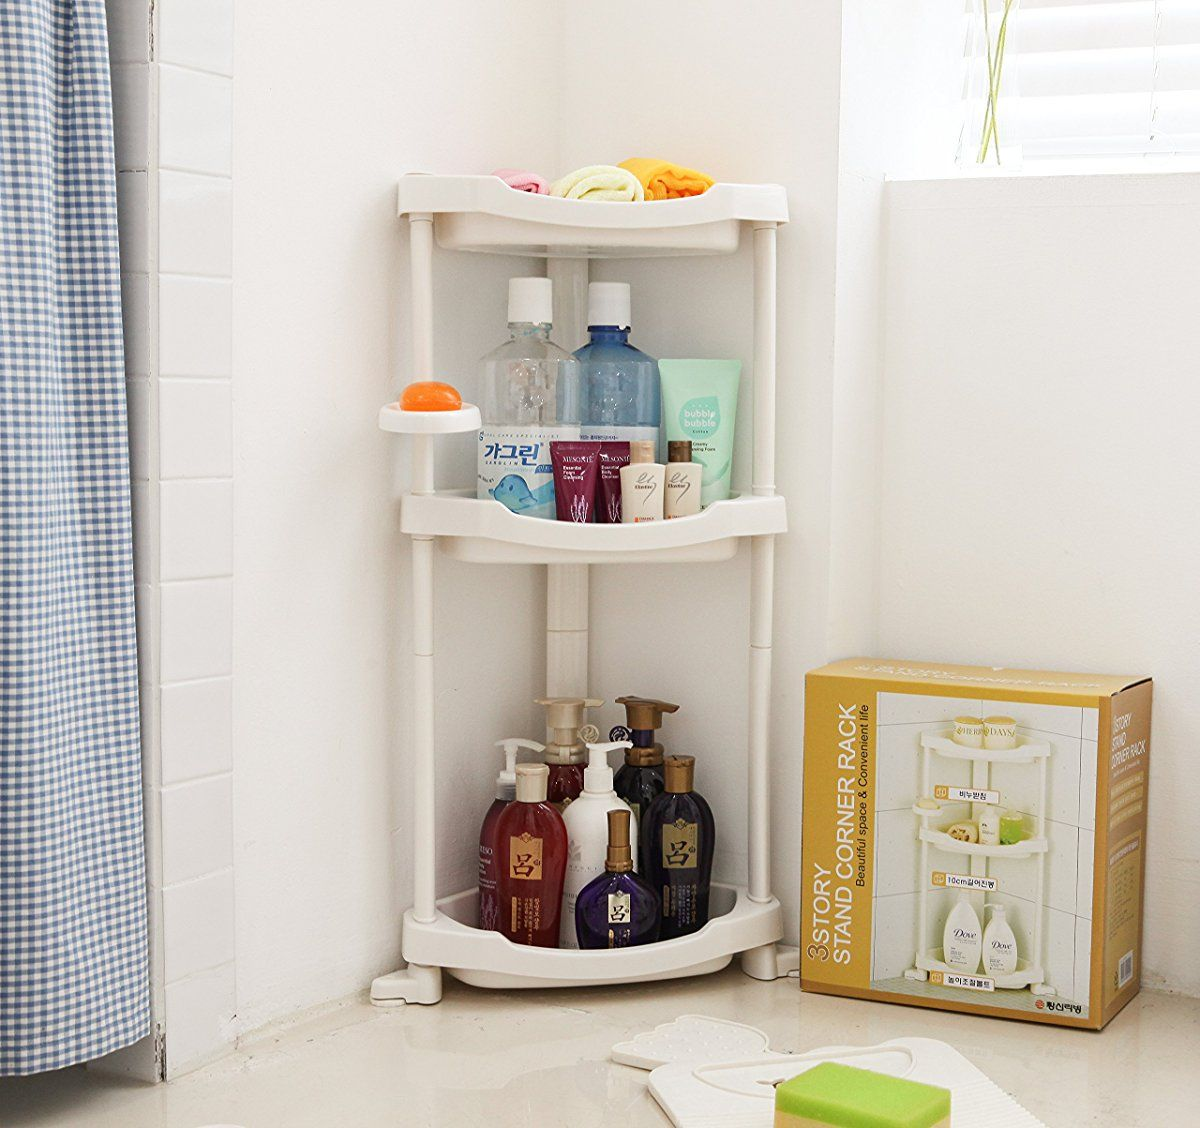 Tenby Living Corner Shower Caddy - 3 Shelf Shower Organizer Caddie ...